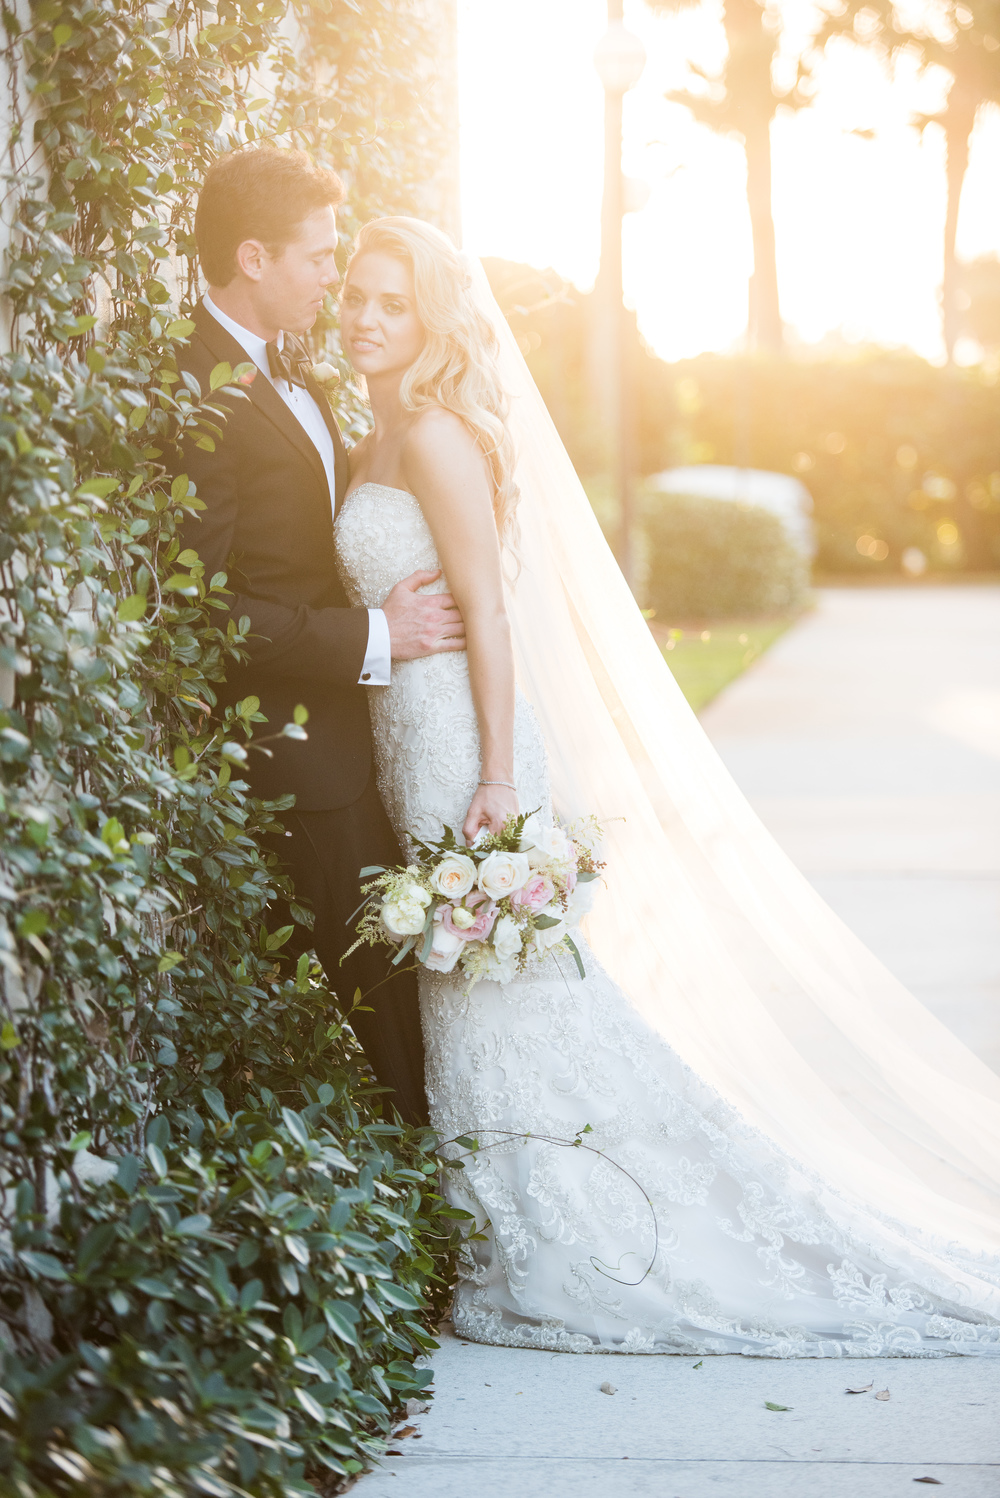 {Eric&Shelley'sWedding}{Dec30th2015}Highlights-0089.jpg